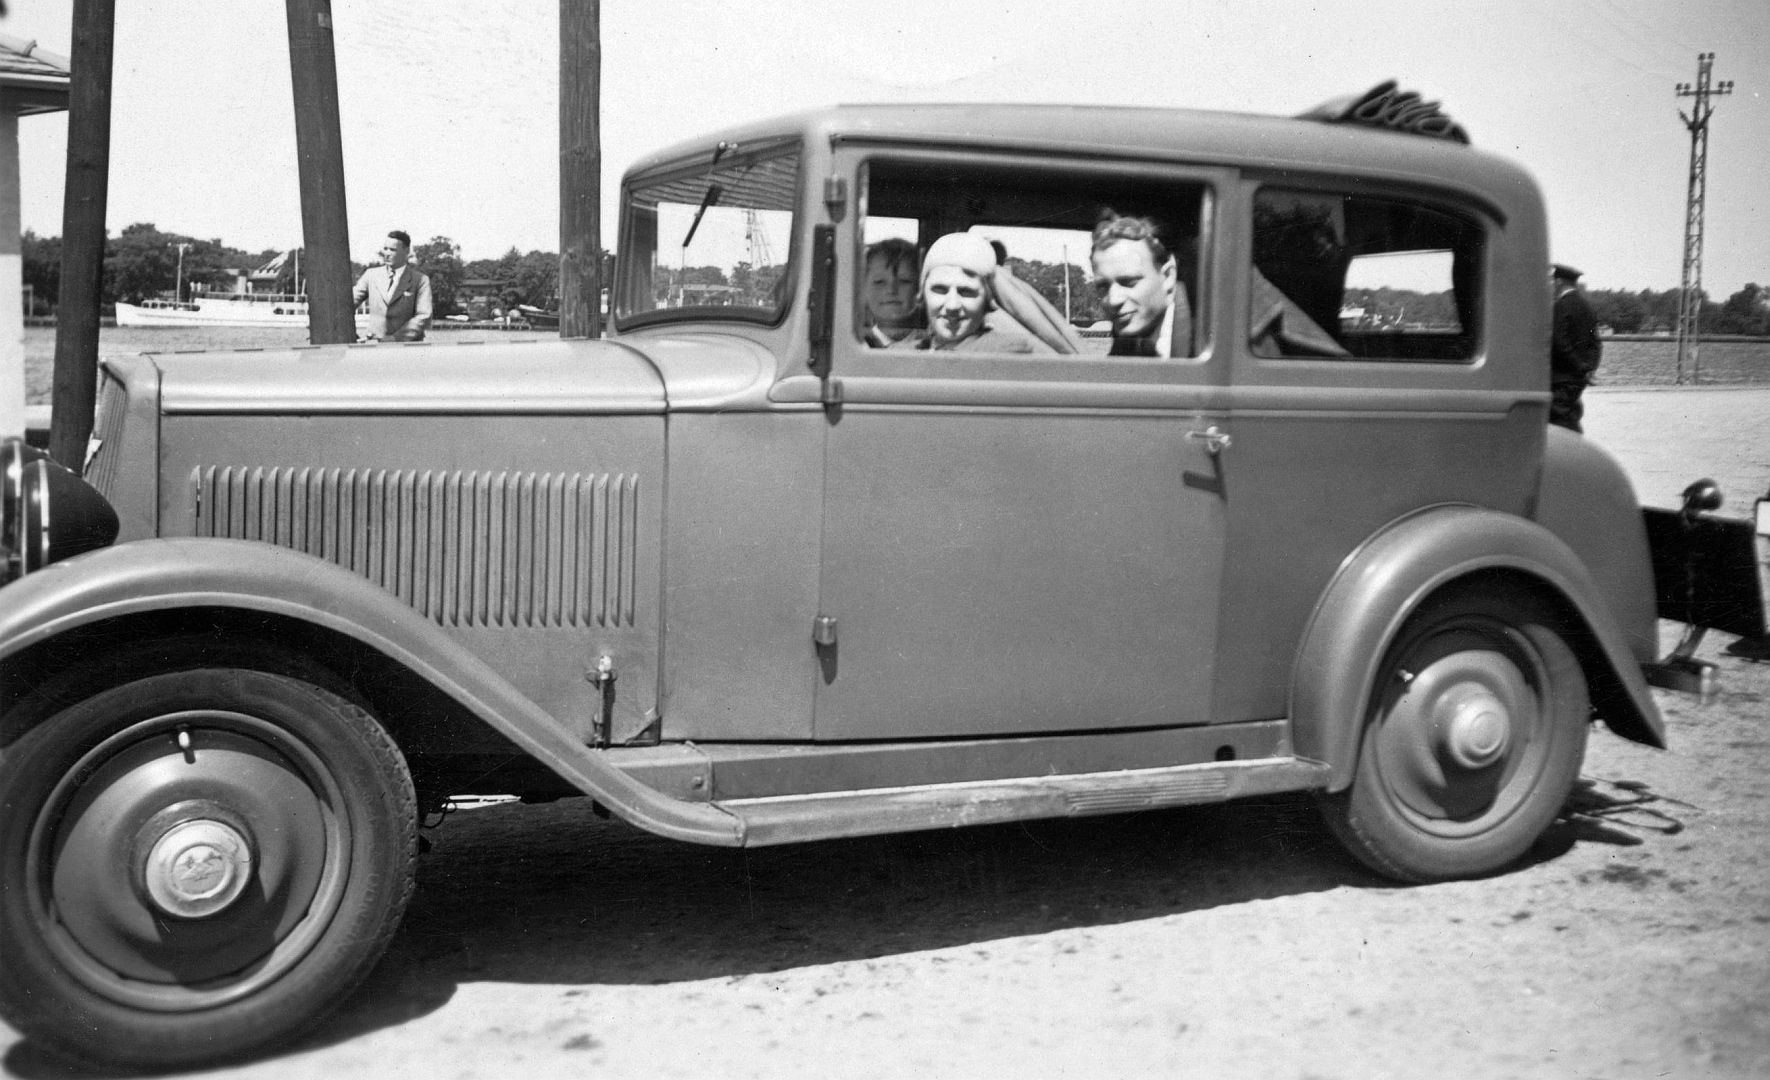 Hanomag_4-23_PS_Rolldach_Galerie